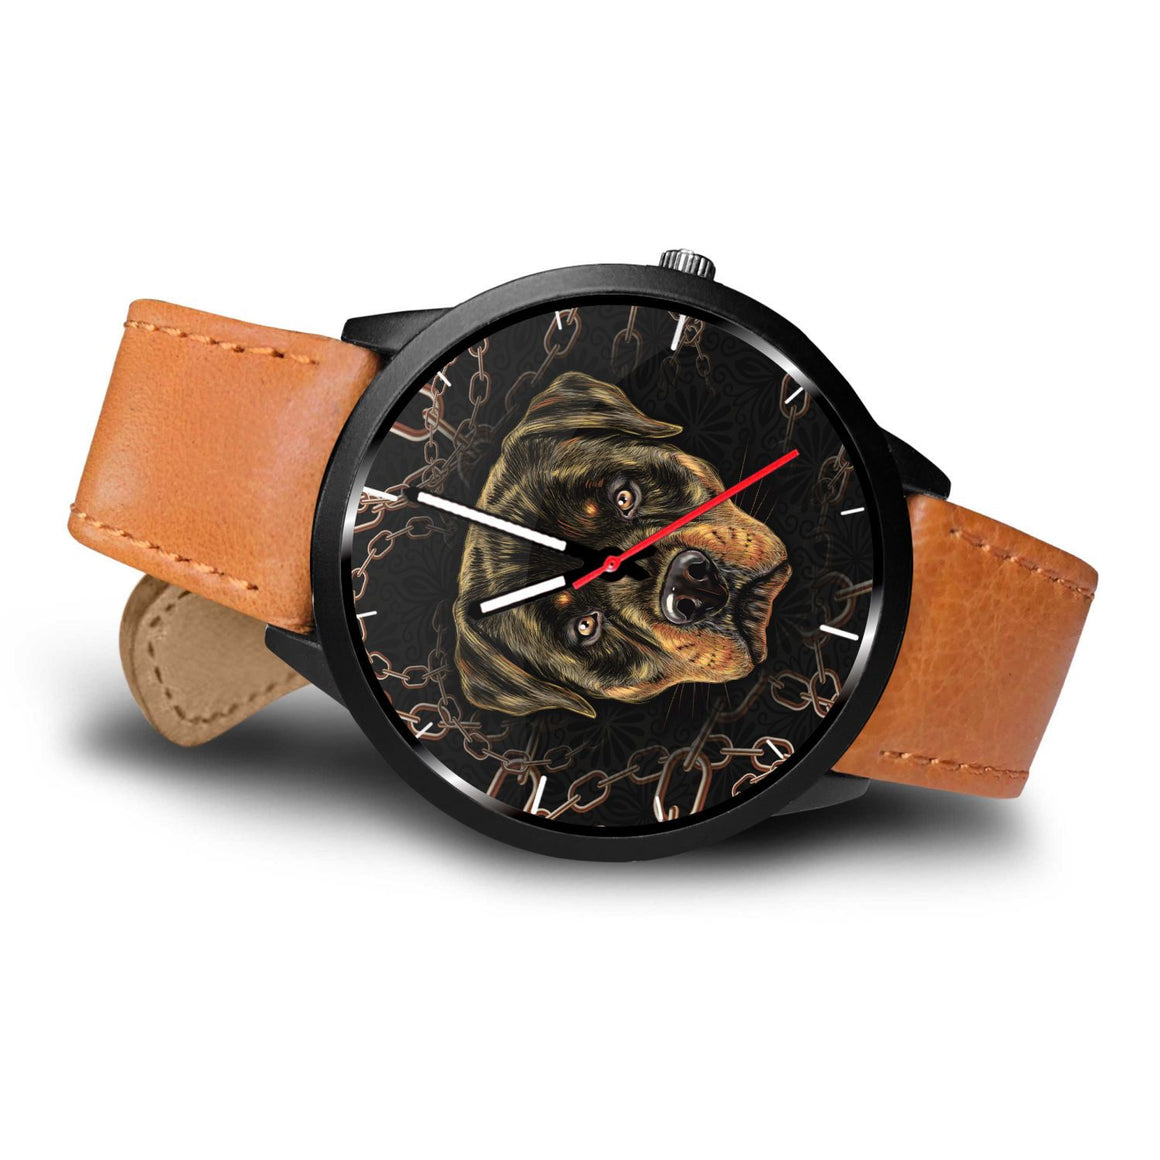 Rottweiler Themed Watch